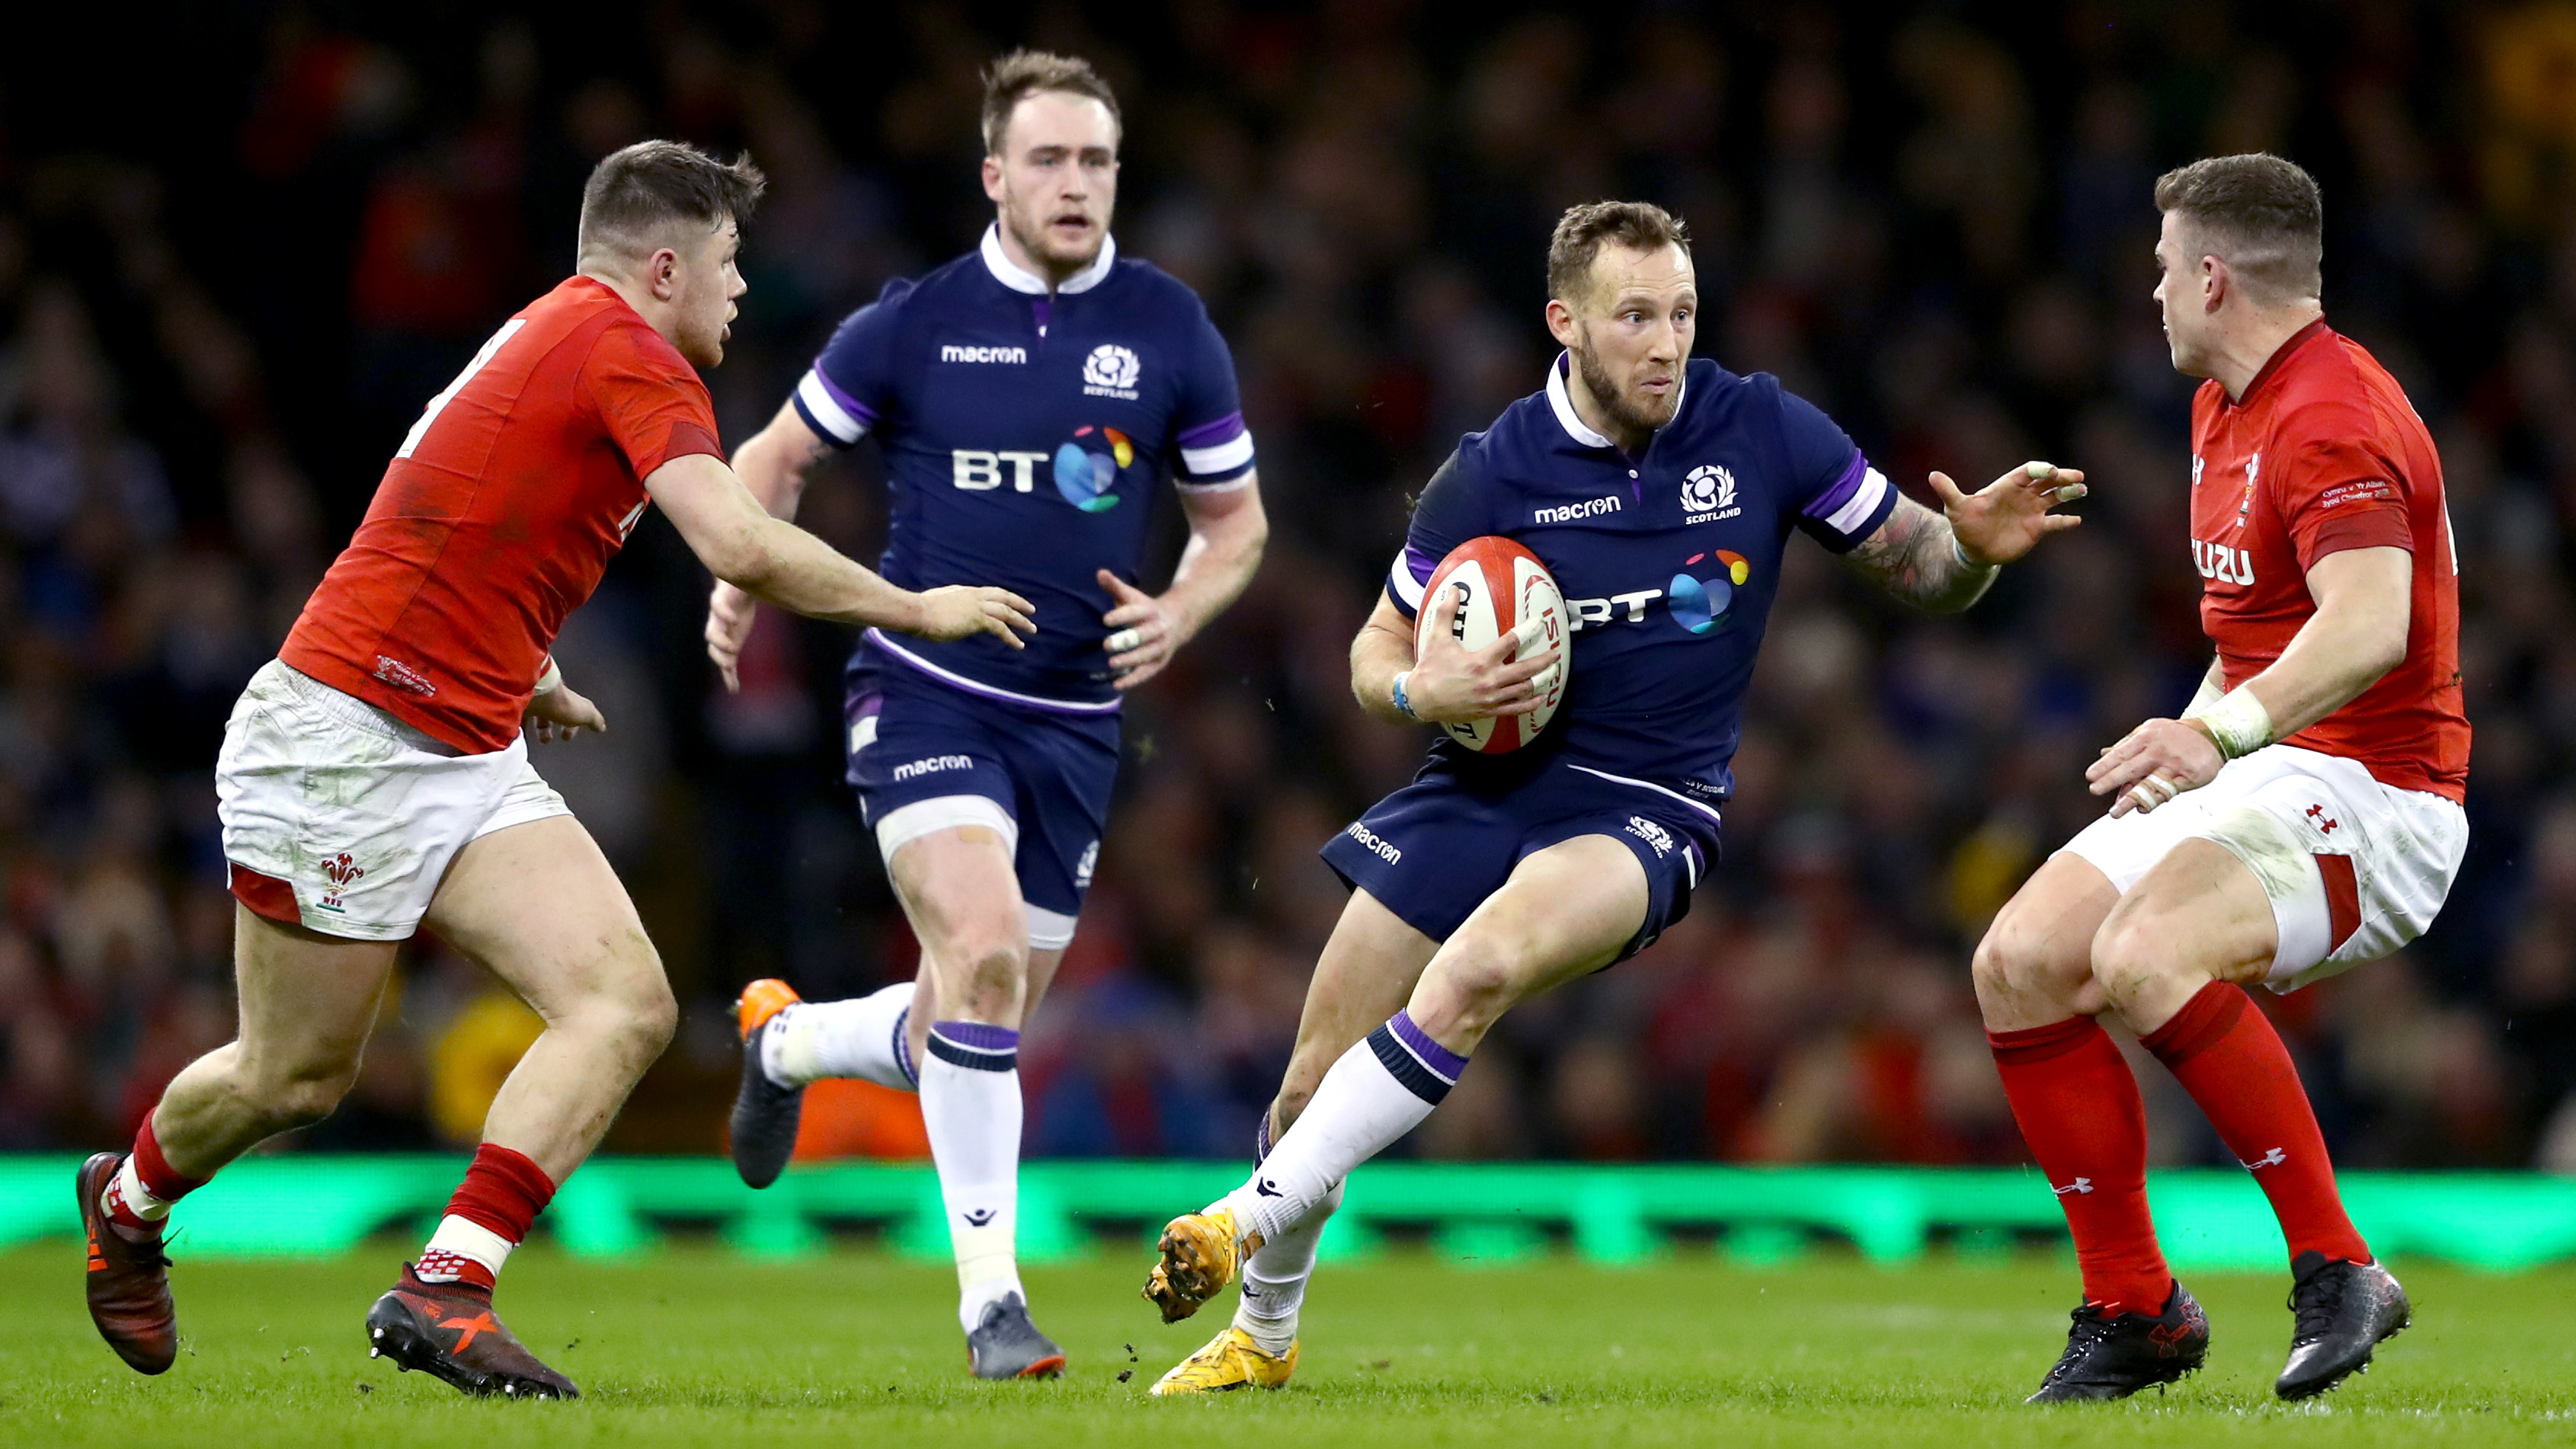 Byron McGuigan is out of the 6 Nations game against France.